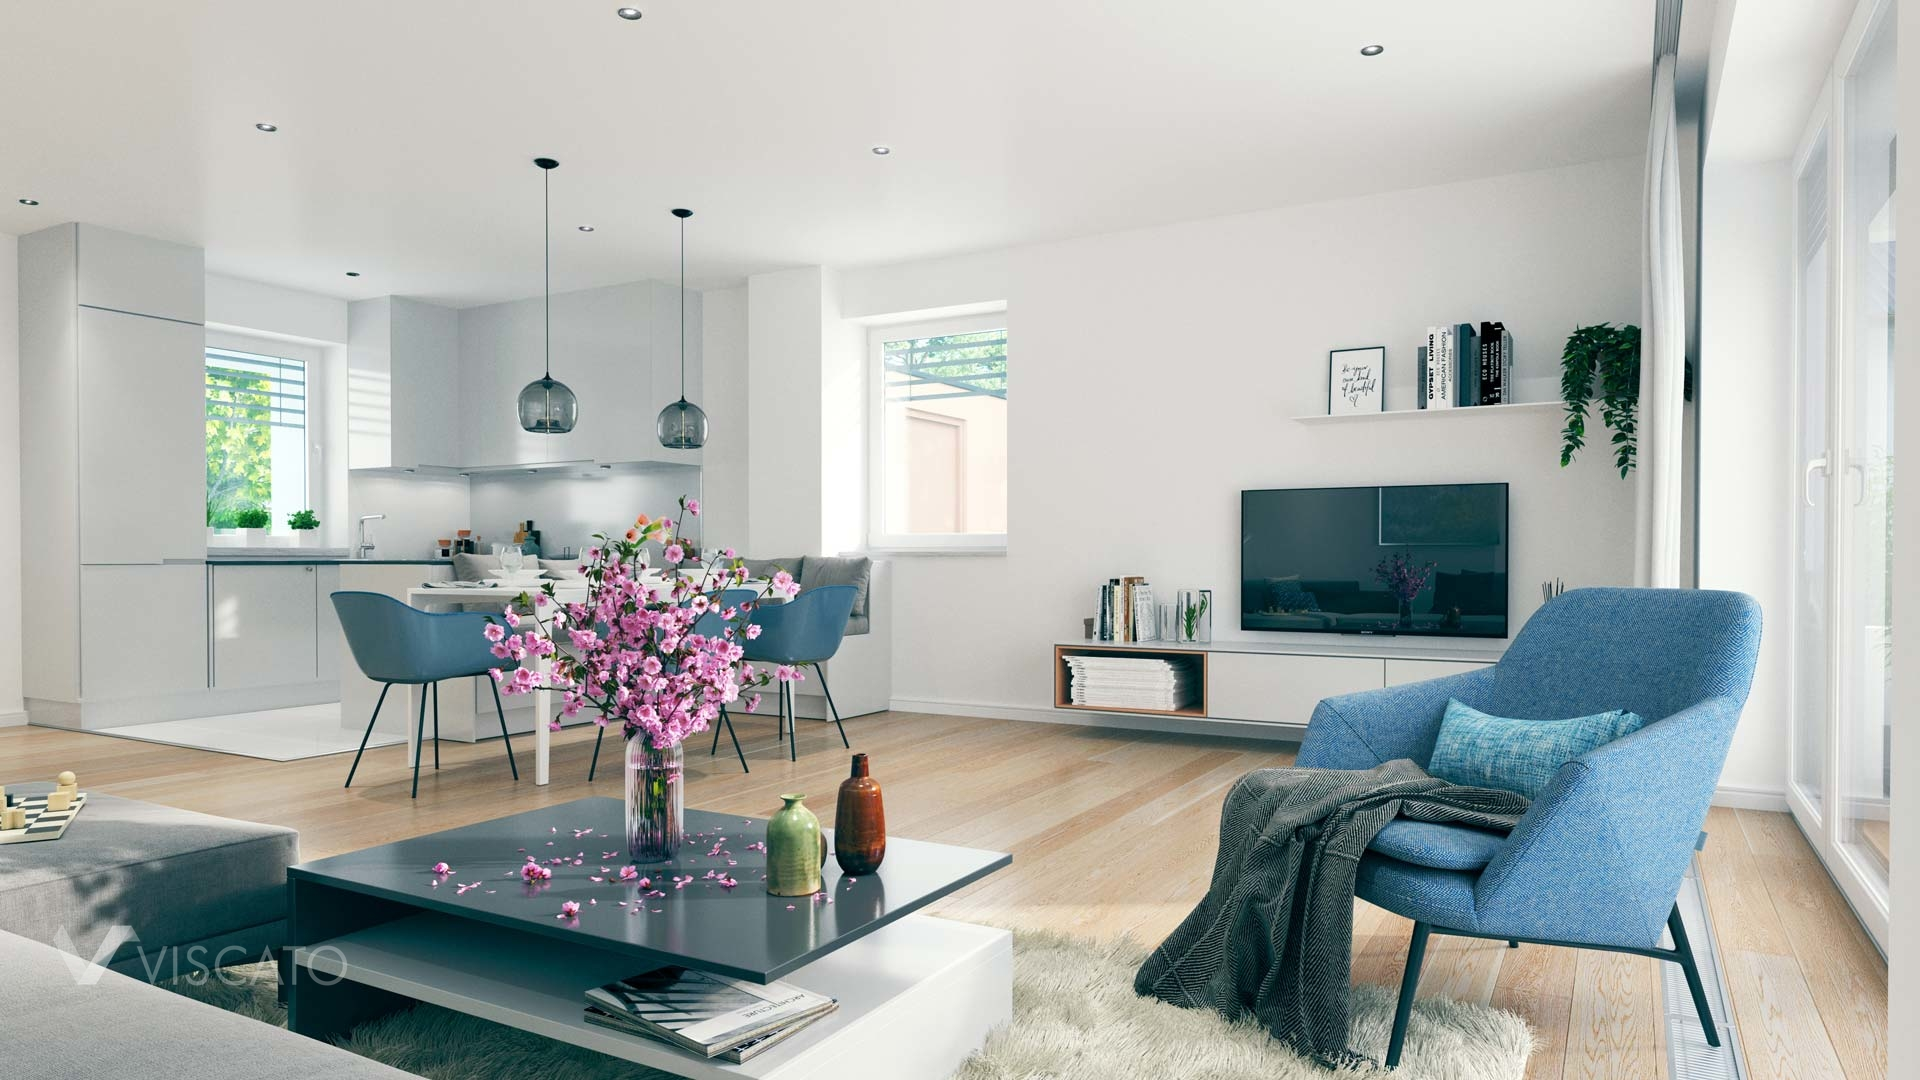 3D visualization of spacious and modern interior with a flower vase Viscato